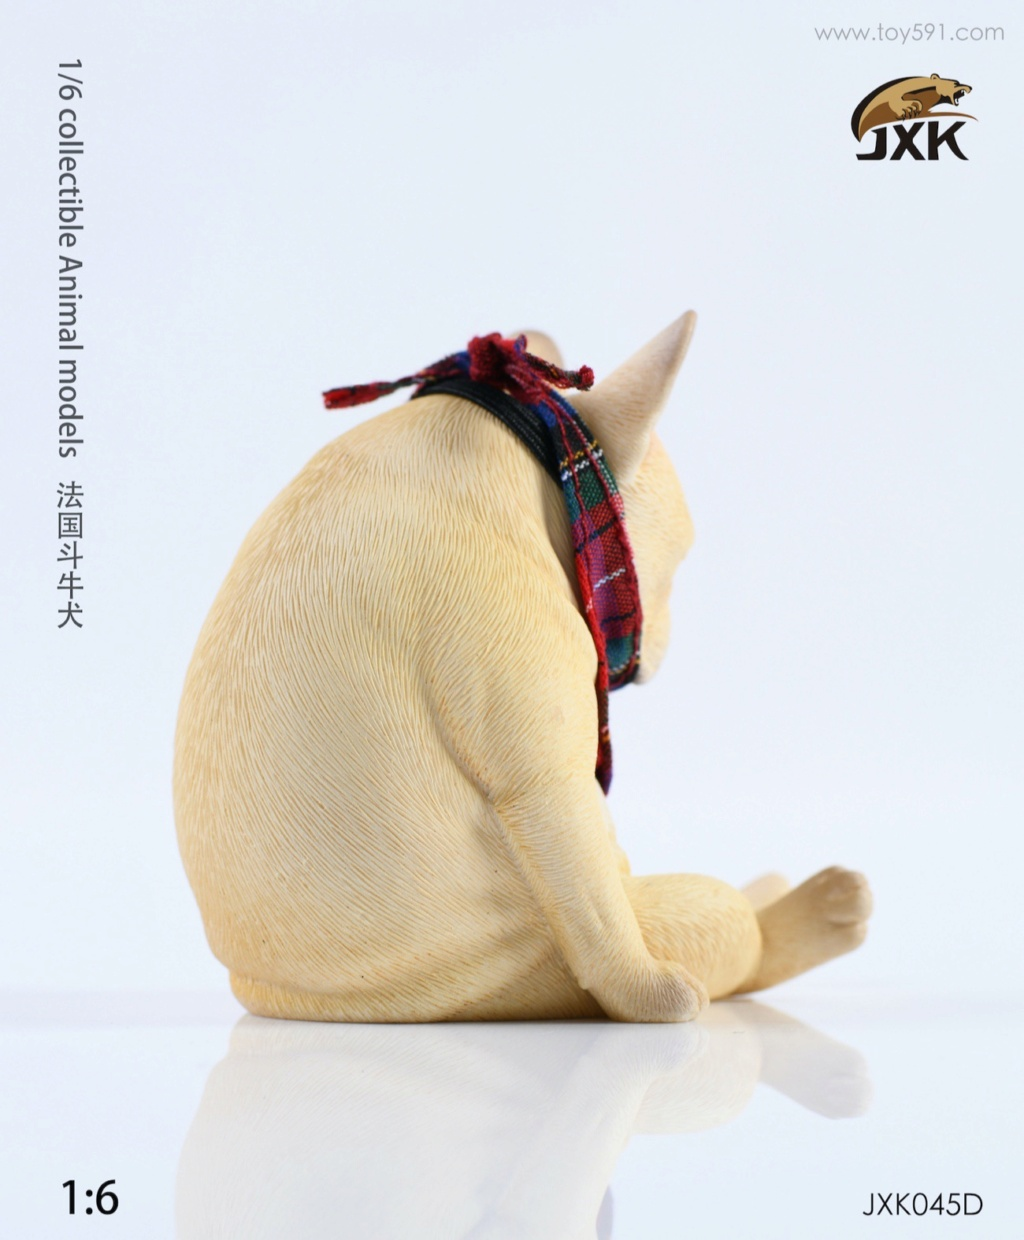 Dog - NEW PRODUCT: JXK 1/6 Decadent Dog JXK045 French Bulldog + Scarf A2911810